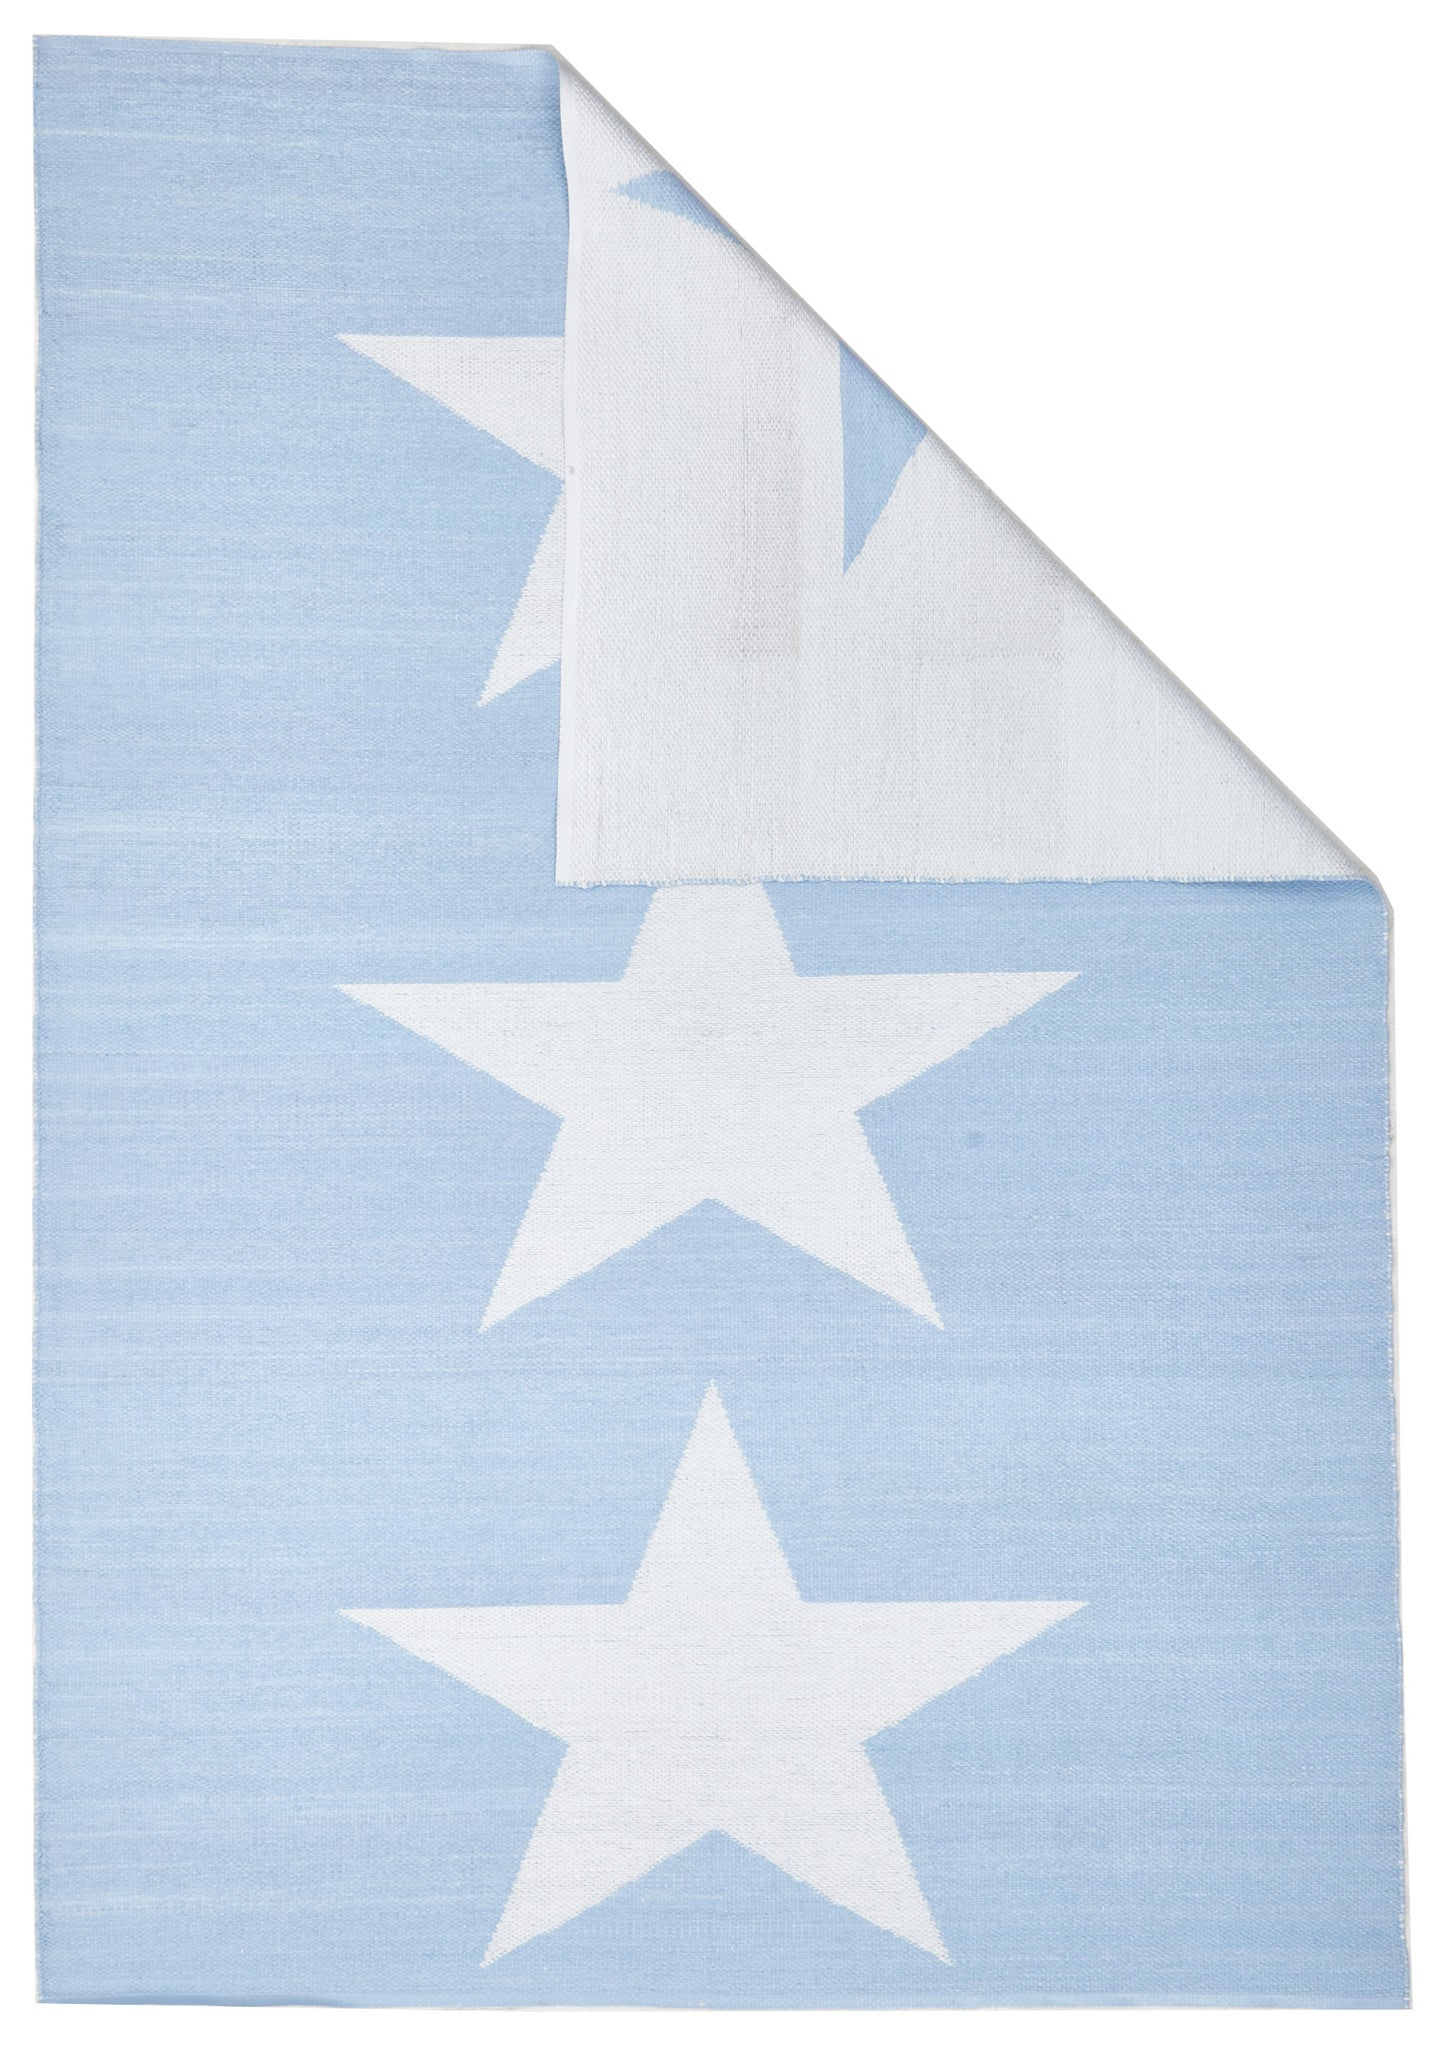 Coastal 4 Indoor Outdoor Rug - Star Sky Blue White